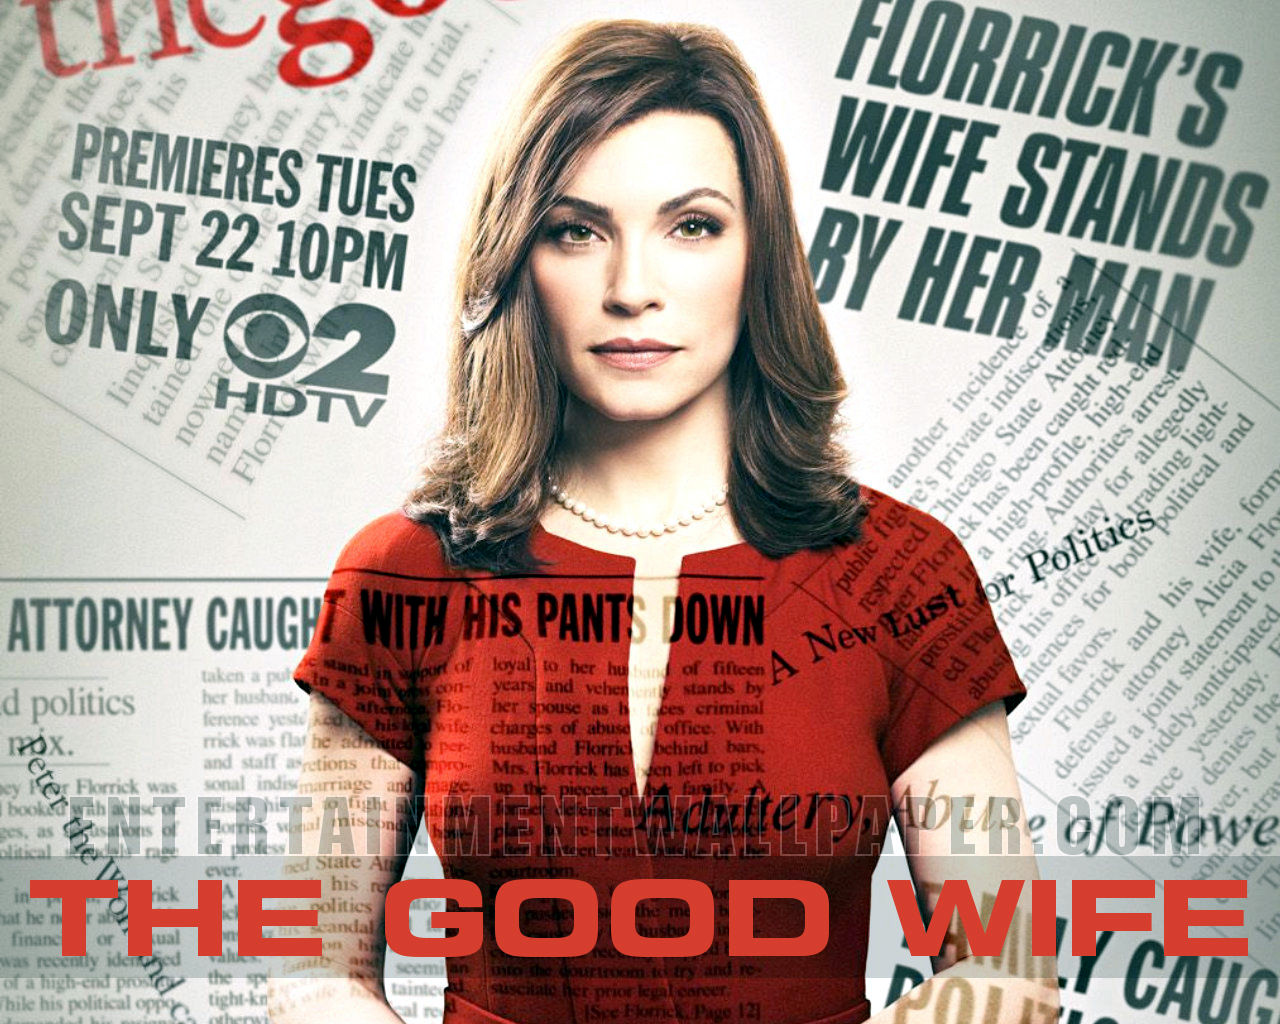 https://4.bp.blogspot.com/_bxVwQQSLuW4/Sw7OQE9fcFI/AAAAAAAAA2Q/3JFYPIugjN0/s1600/tv_the_good_wife02.jpg